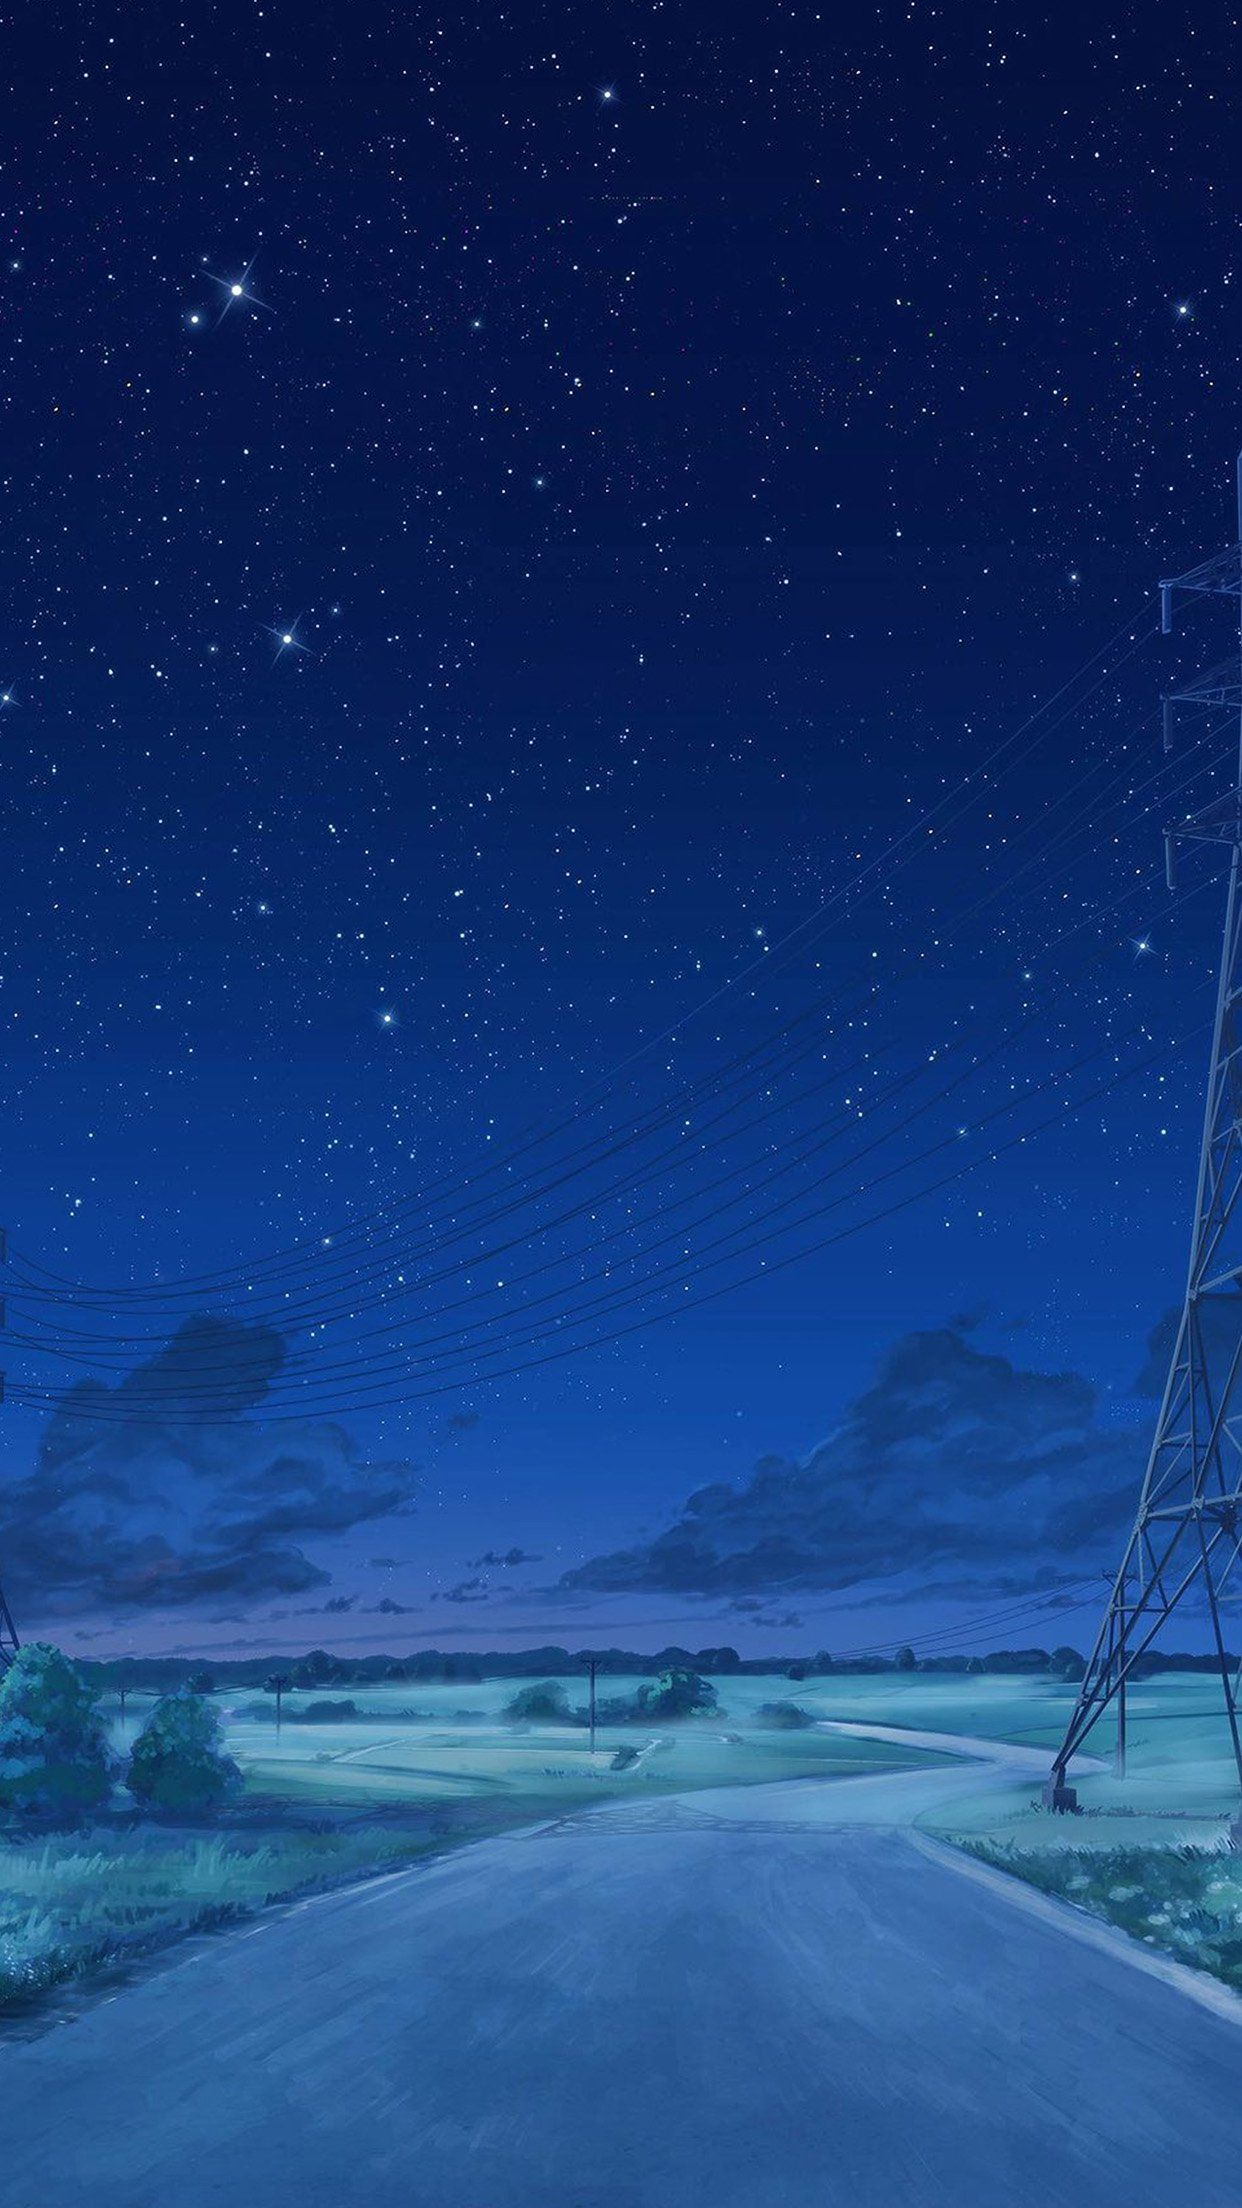 Watching The Star Fall Iphone Wallpapers Hd Anime Scenery Galaxy Wallpaper Night Sky Wallpaper